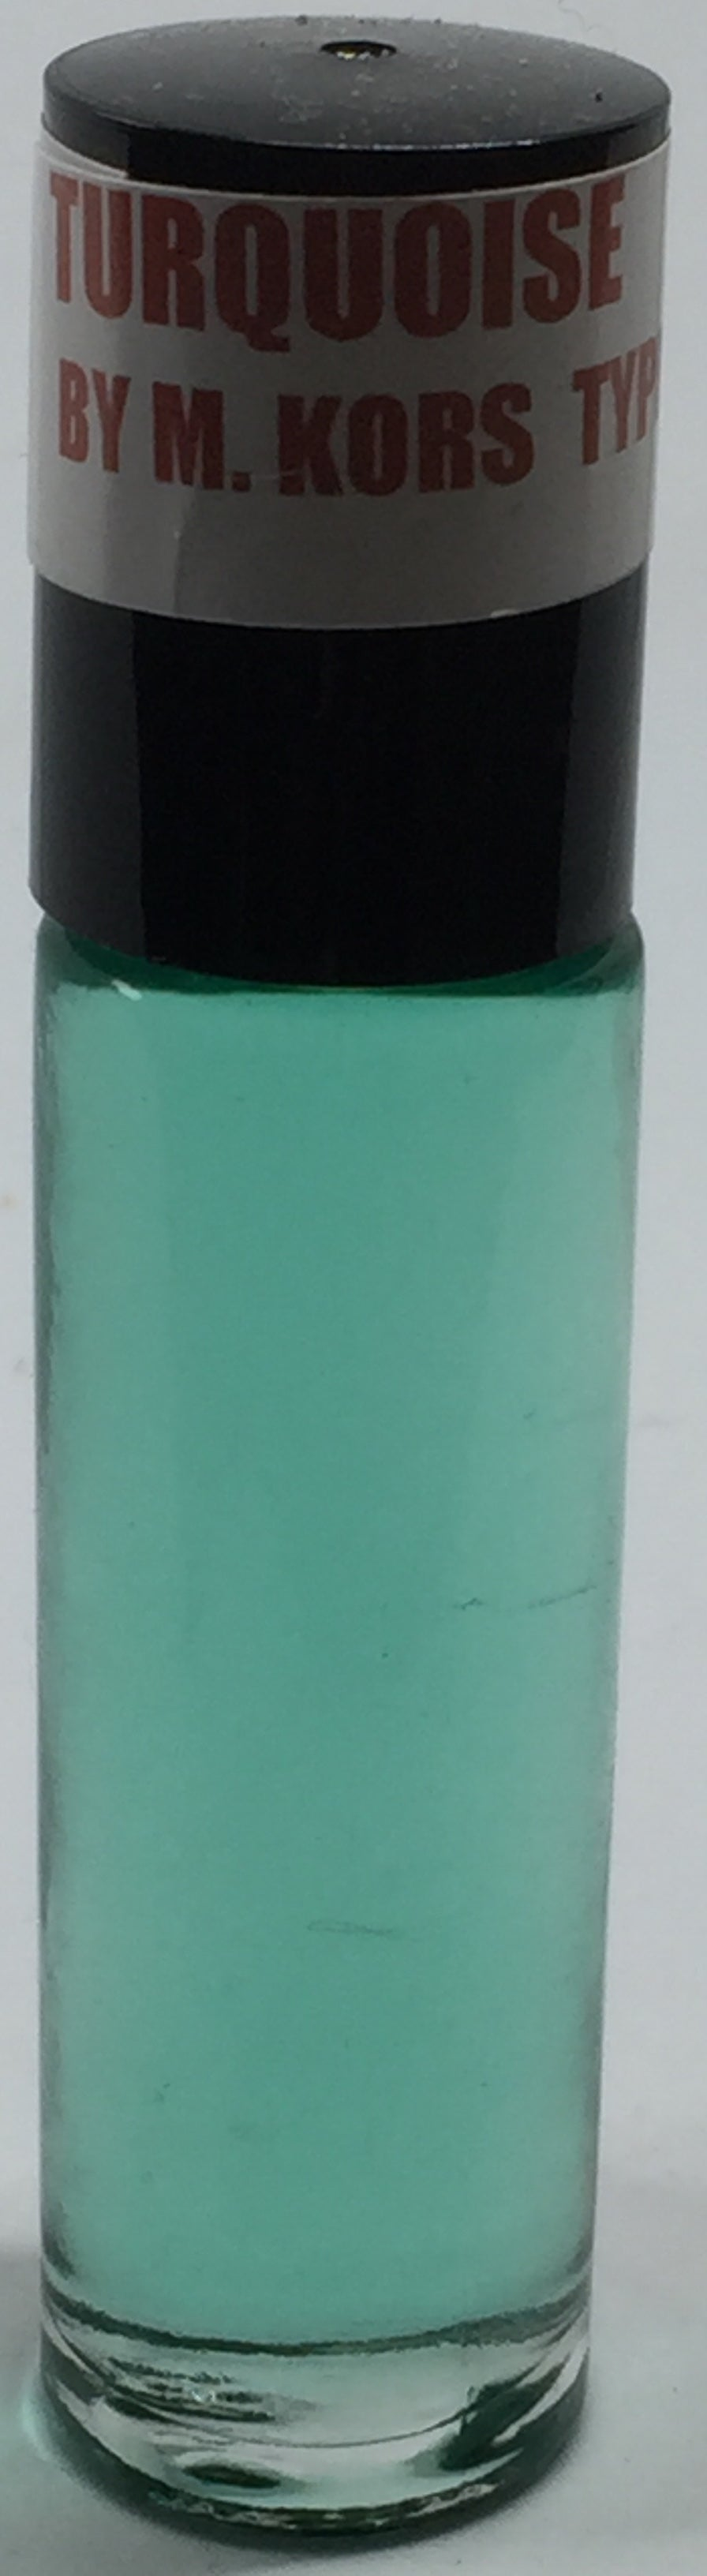 Turquois By M. Kors Type :Fragrance(Perfume)Body Oil Women